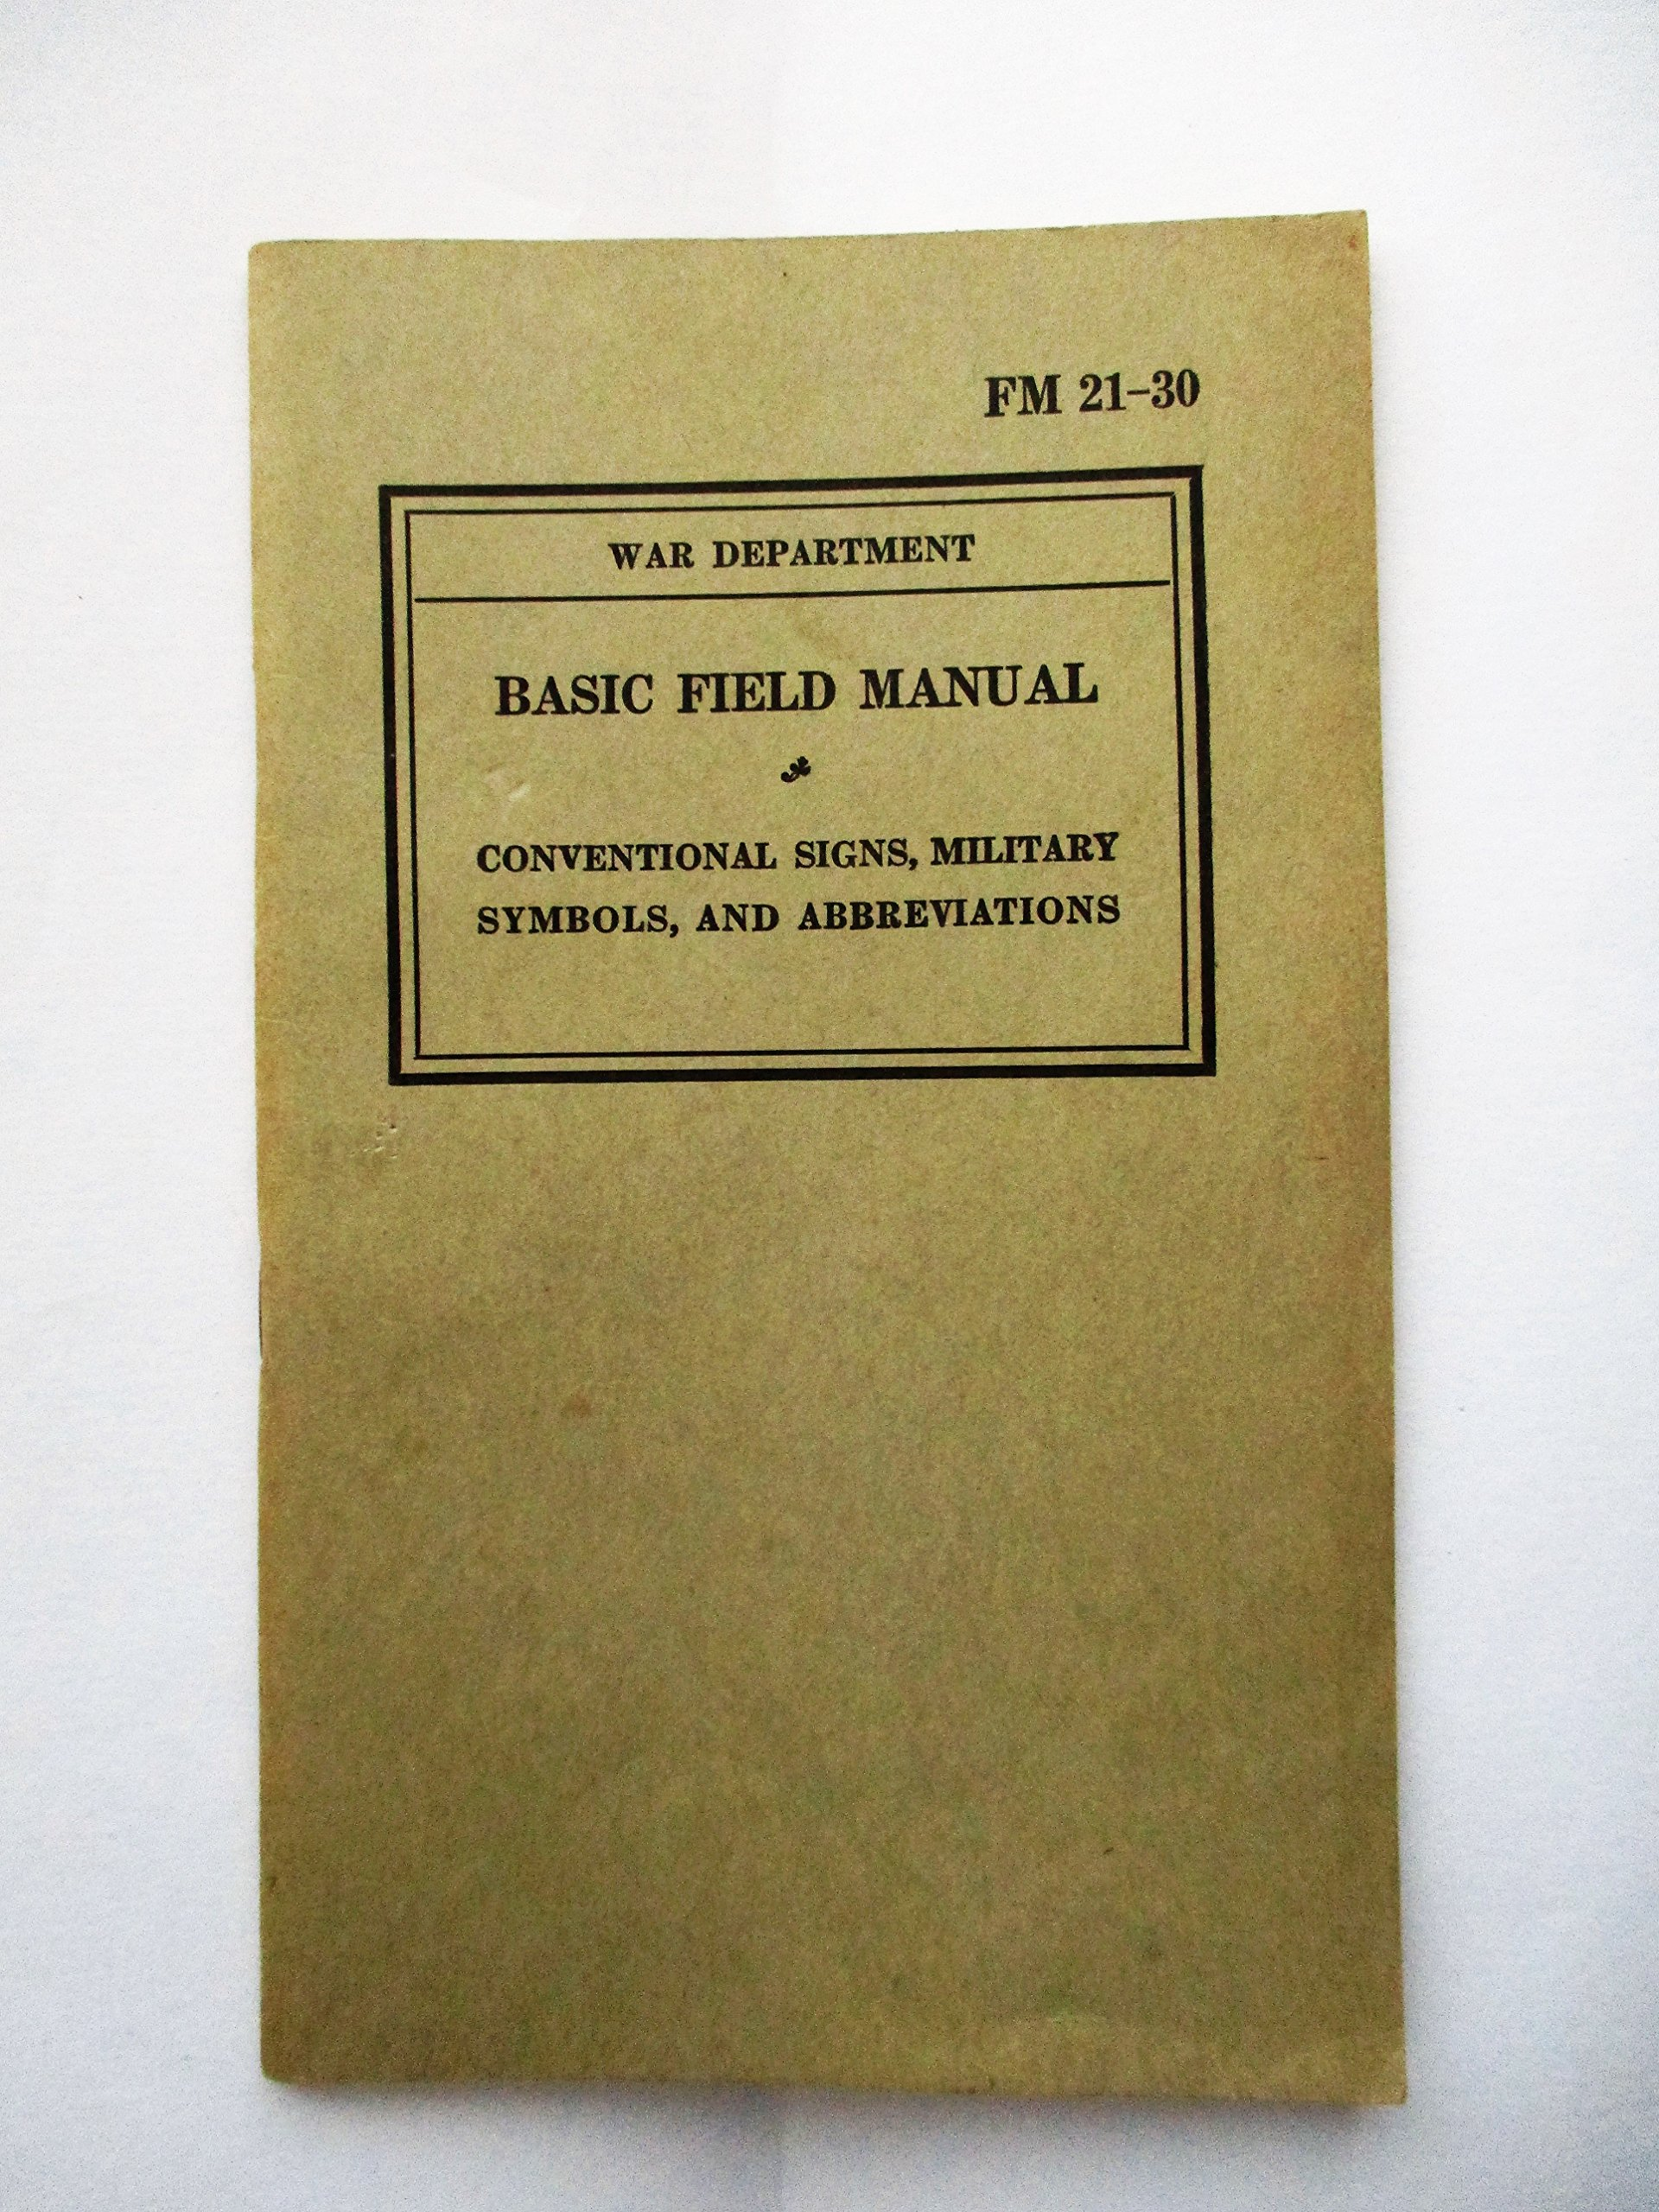 Basic Field Manual Conventional Signs, Military Symbols, and